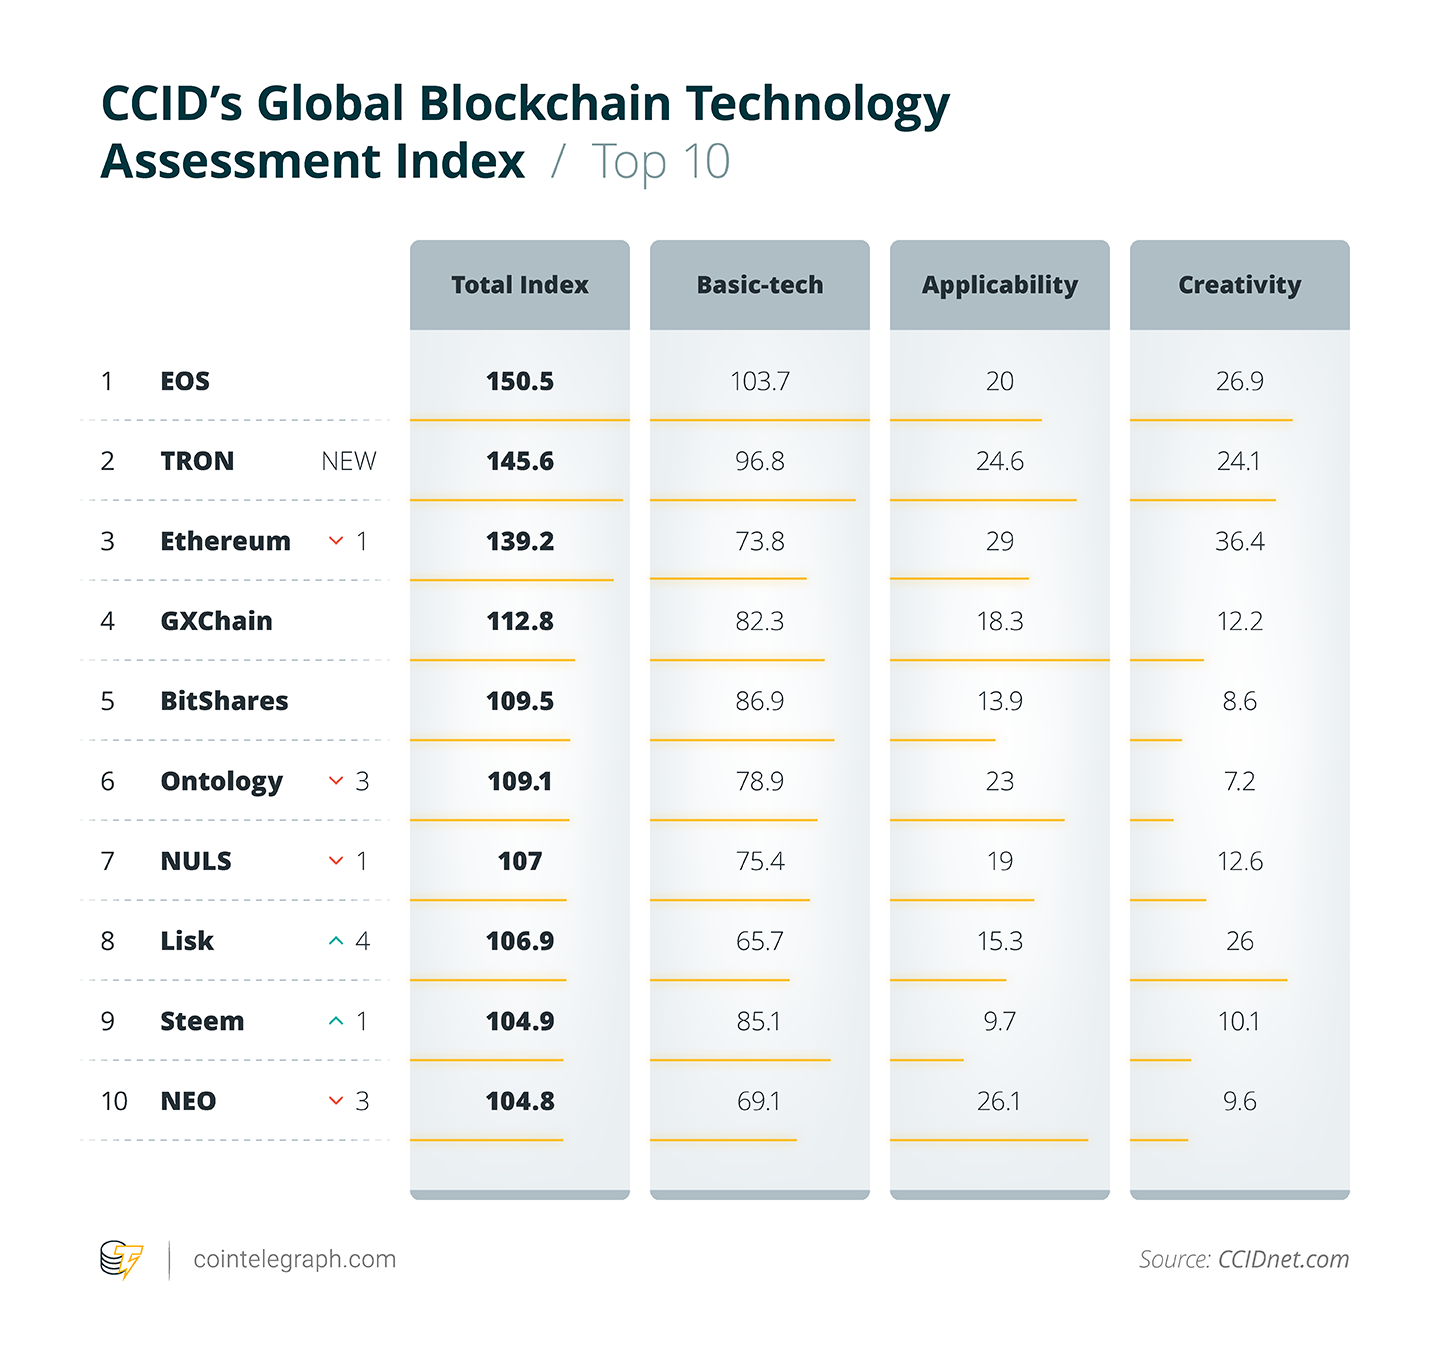 CCID's Global Blockchain Technology Assessments Index / Top 10